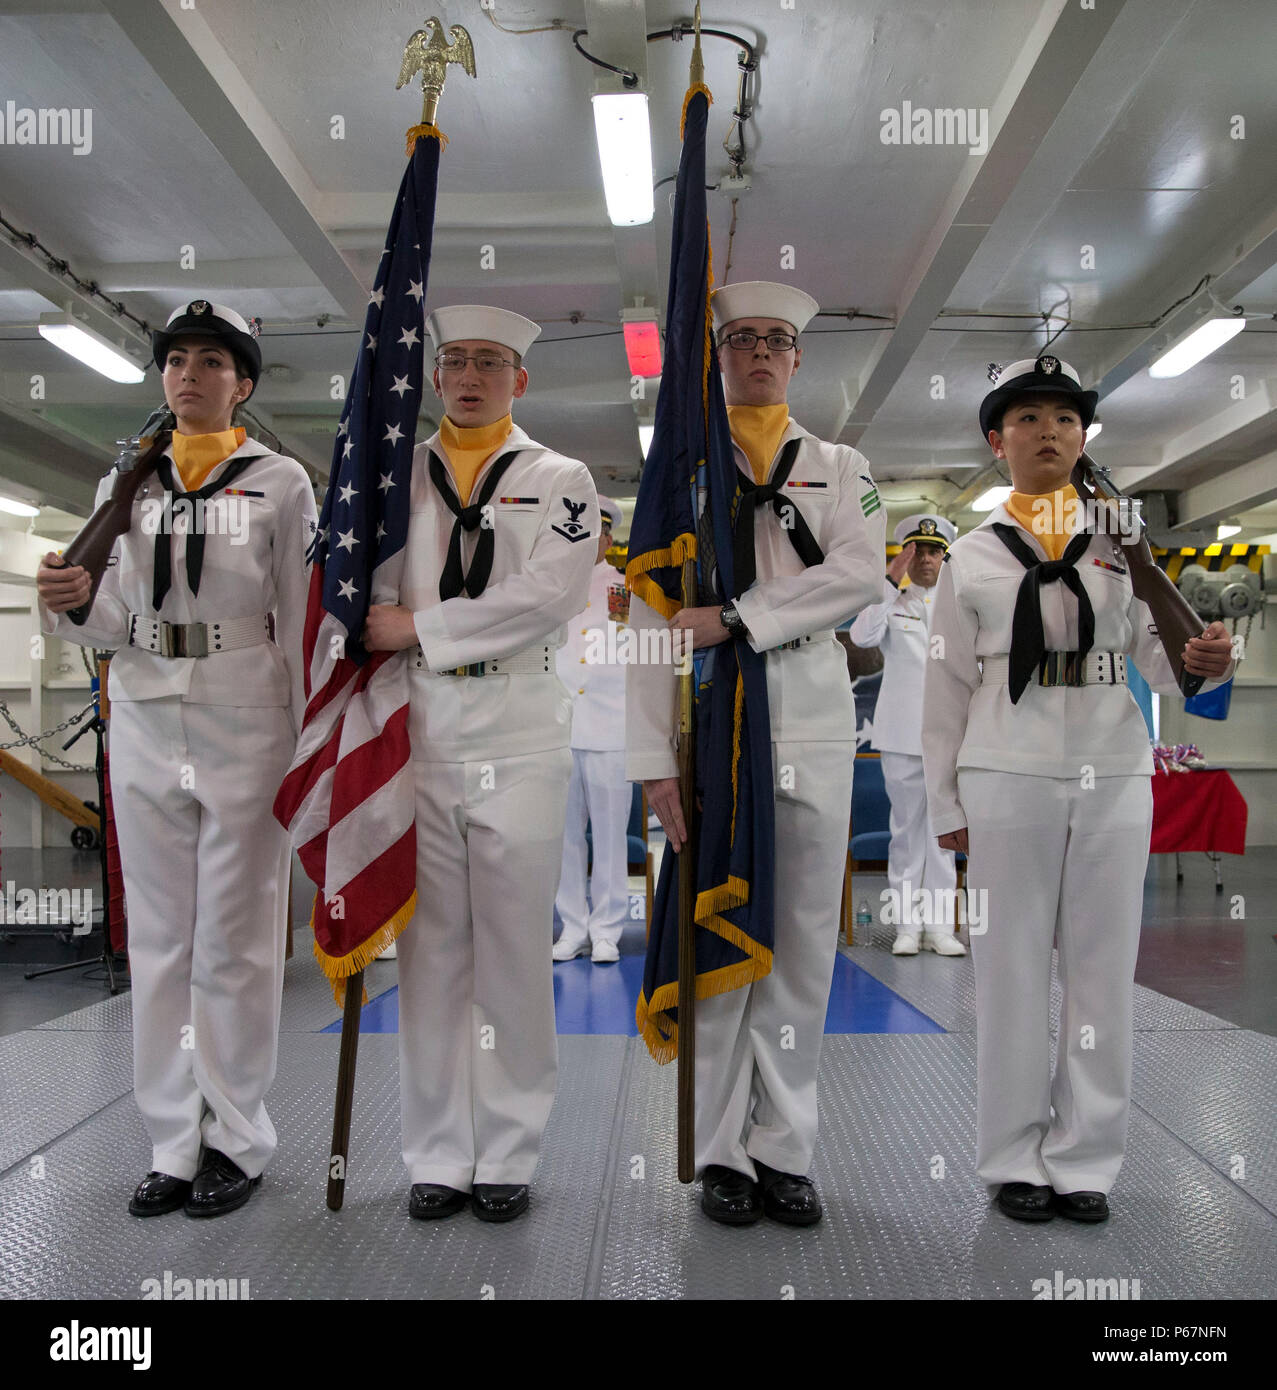 NEWPORT NEWS, Va. (May 13, 2016) --  Pre-Commissioning Unit Gerald R. Ford's (CVN 78) color guard parades the colors during a retirement ceremony in the ship's forecastle. Ford is the first of a new class of aircraft carriers currently under construction by Huntington Ingalls Industries Newport News Shipbuilding. (U.S. Navy photo by Mass Communication Specialist Seaman Apprentice Connor Loessin/Released) - Stock Image